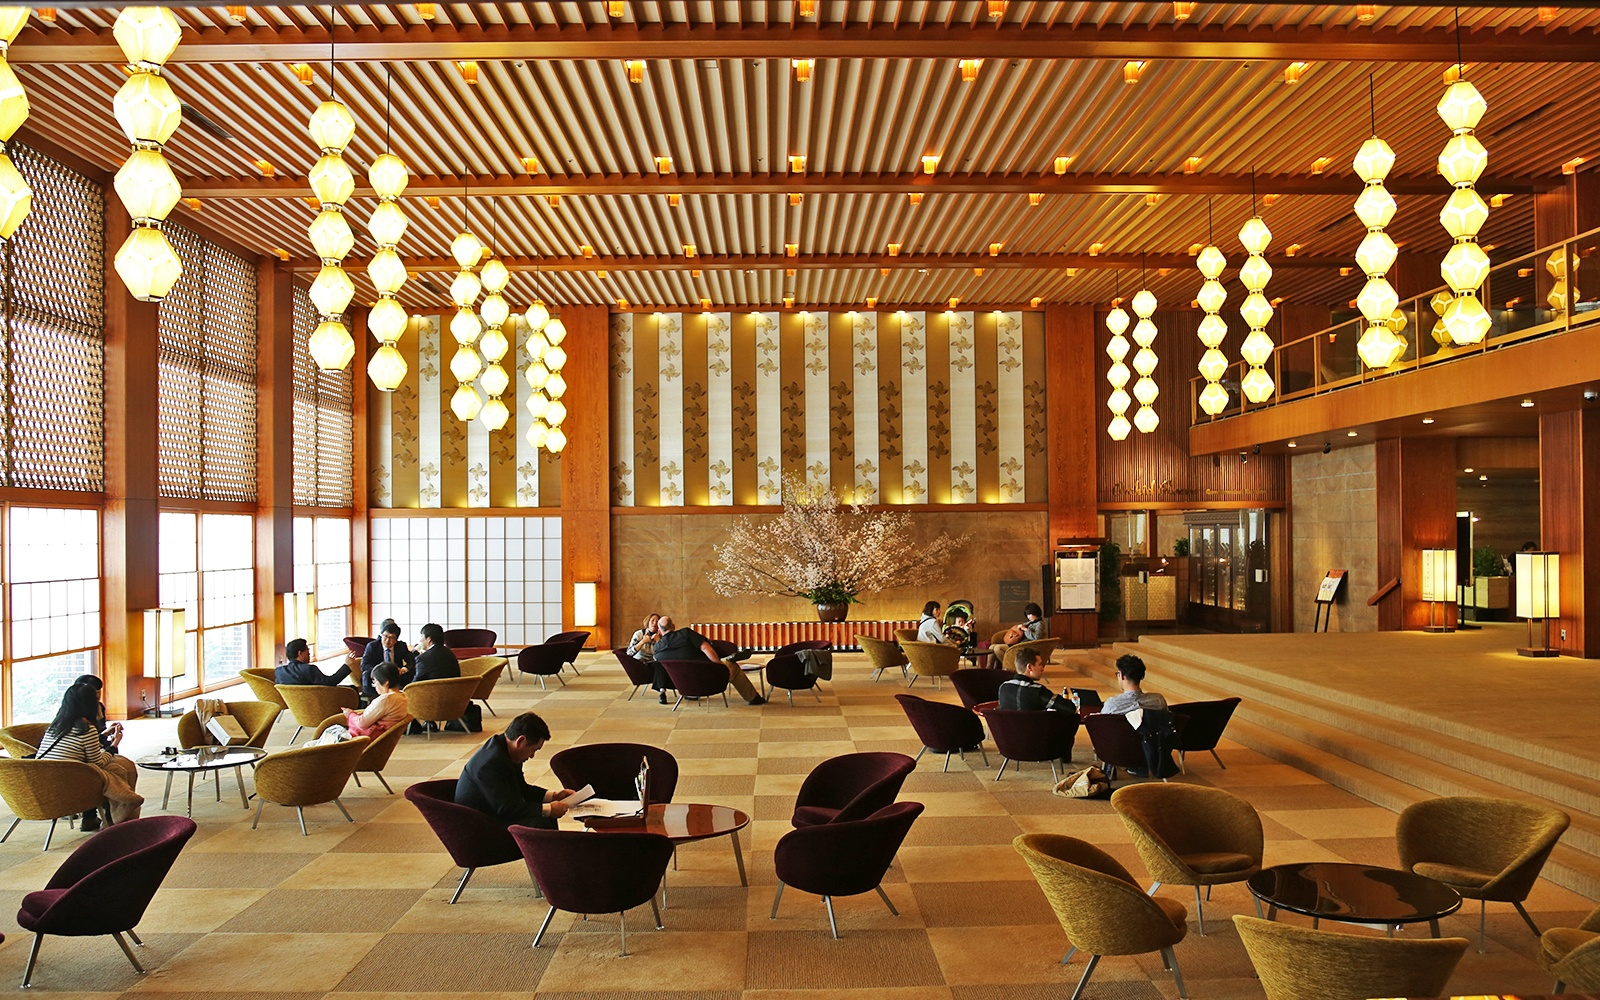 Take One Last Look at Tokyo's Iconic Hotel Okura Before It's Gone